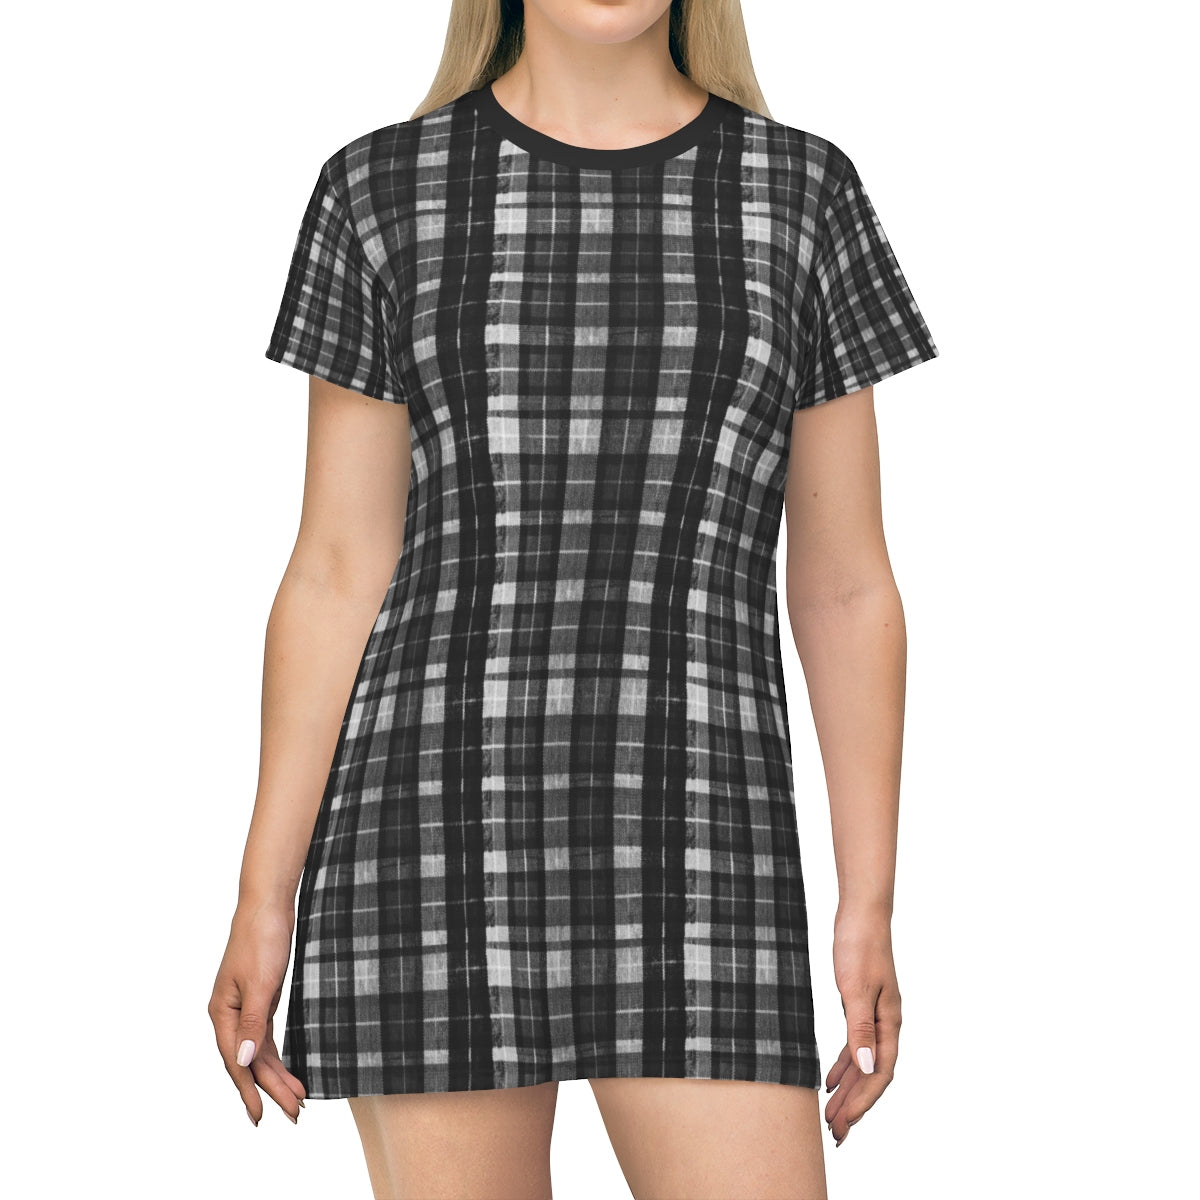 Black Tartan Print T-Shirt Dress, Gray Plaid Print Crew Neck Women's Dress- Made in USA-T-Shirt Dress-L-Heidi Kimura Art LLC